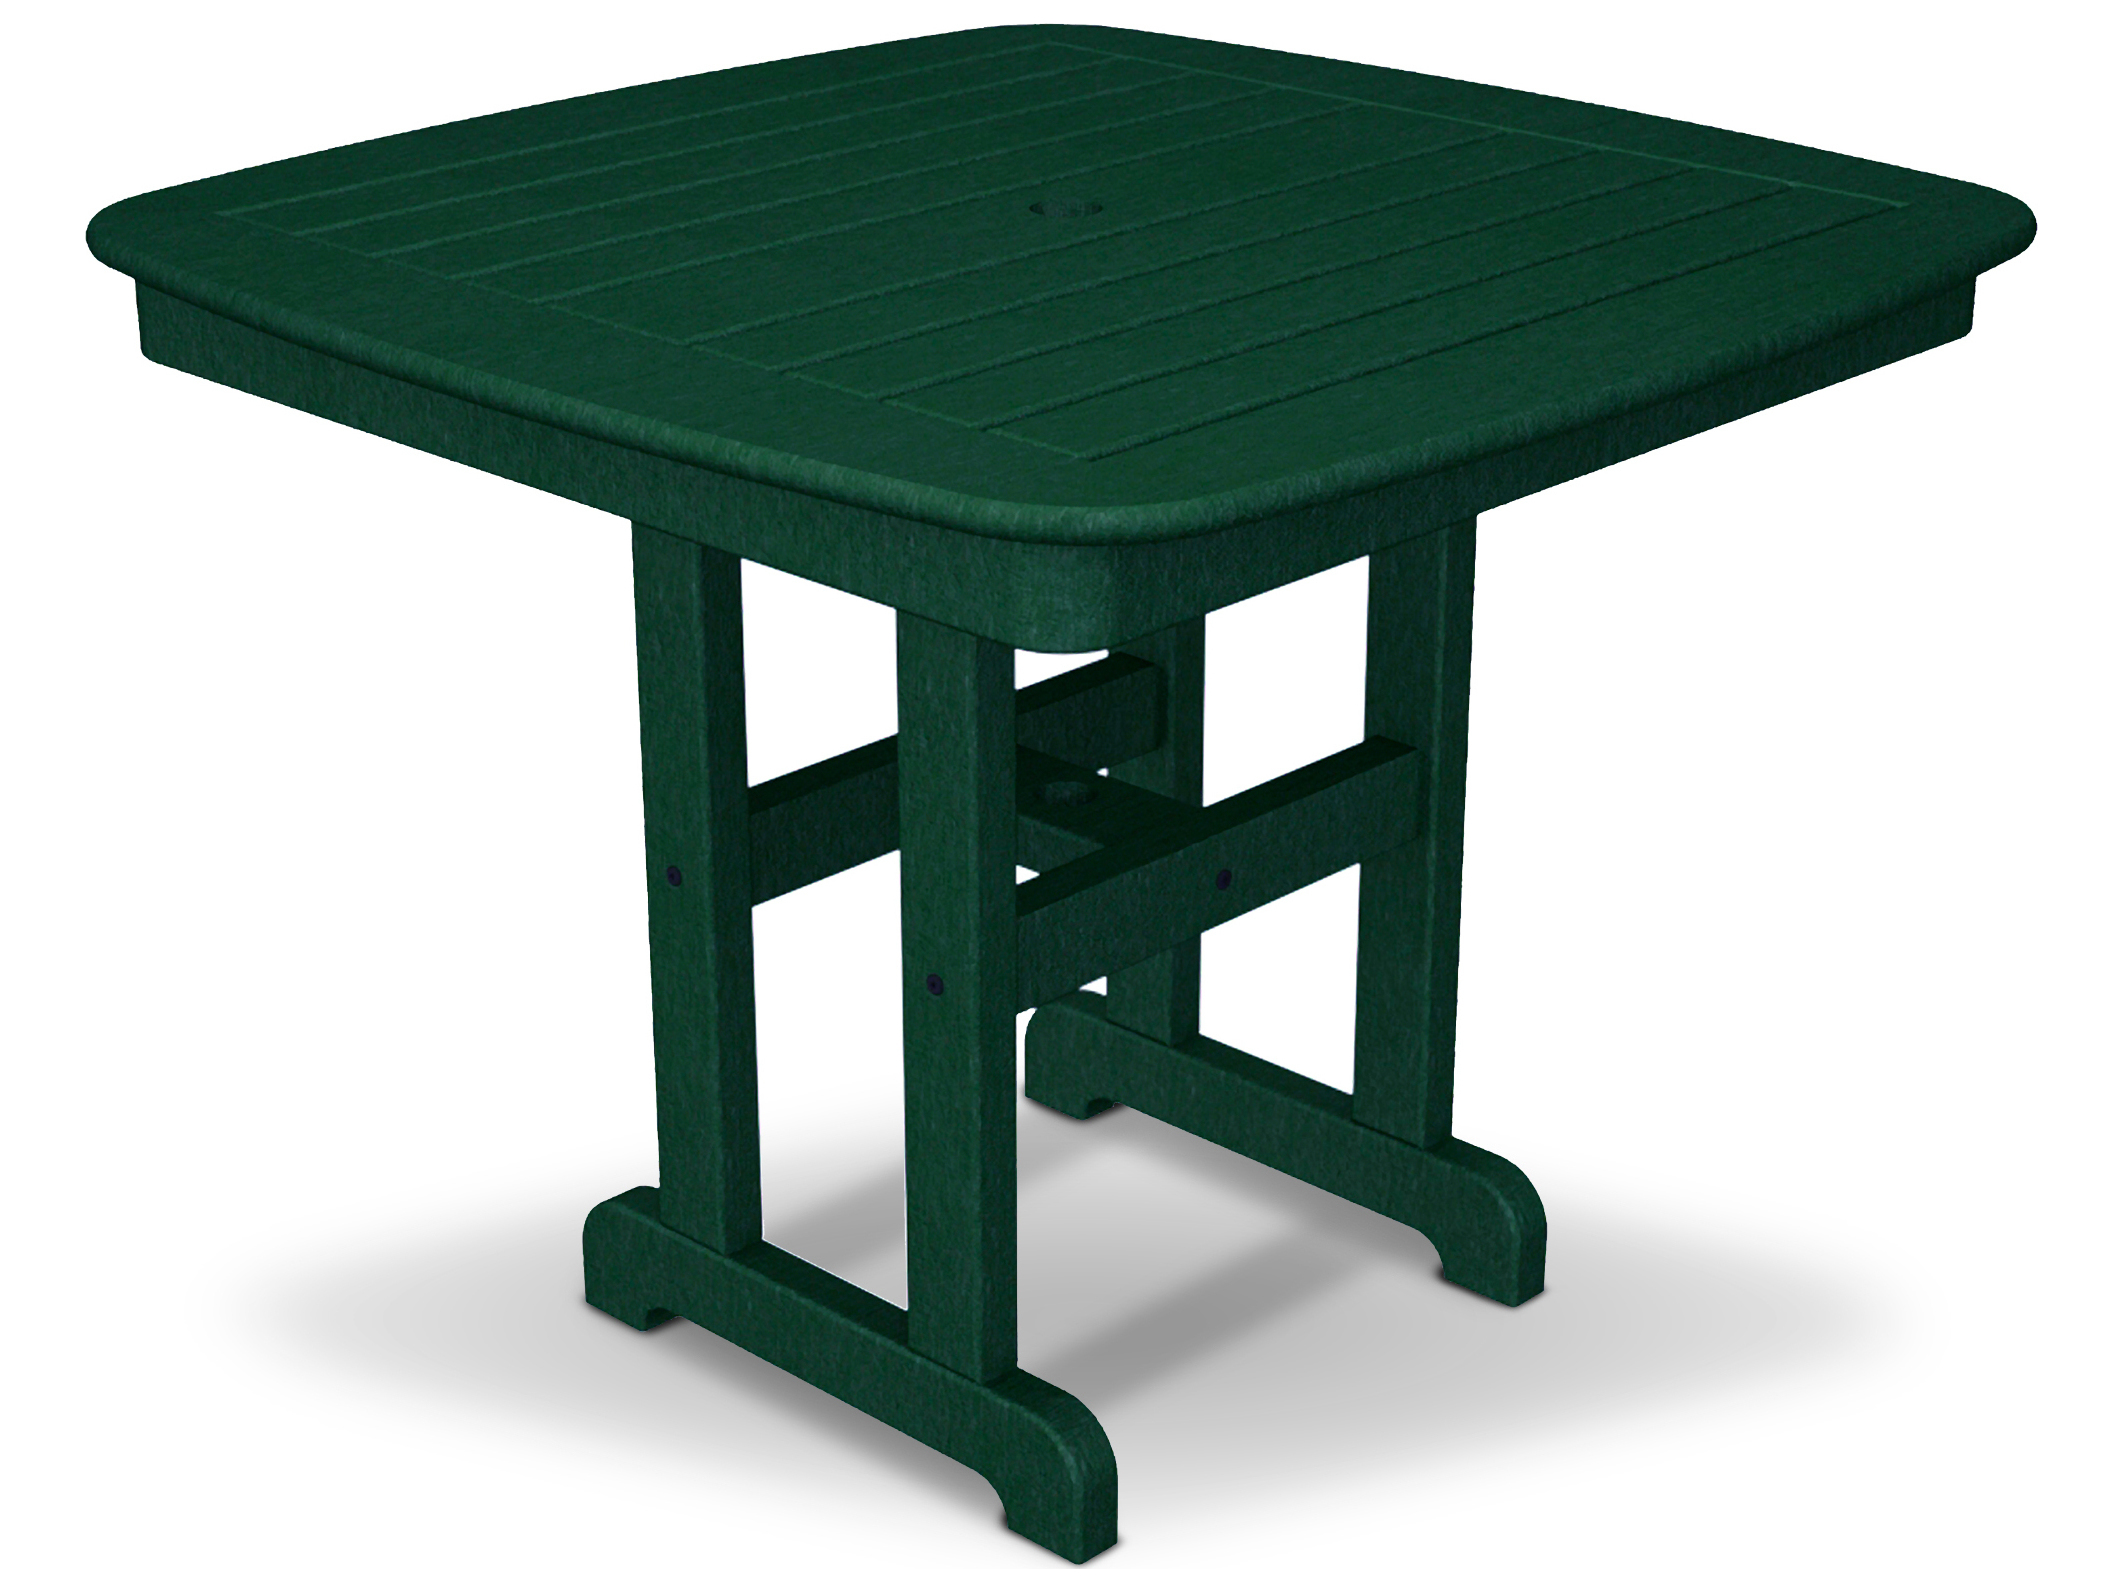 Trex 174 Yacht Club Recycled Plastic 37 Square Dining Table